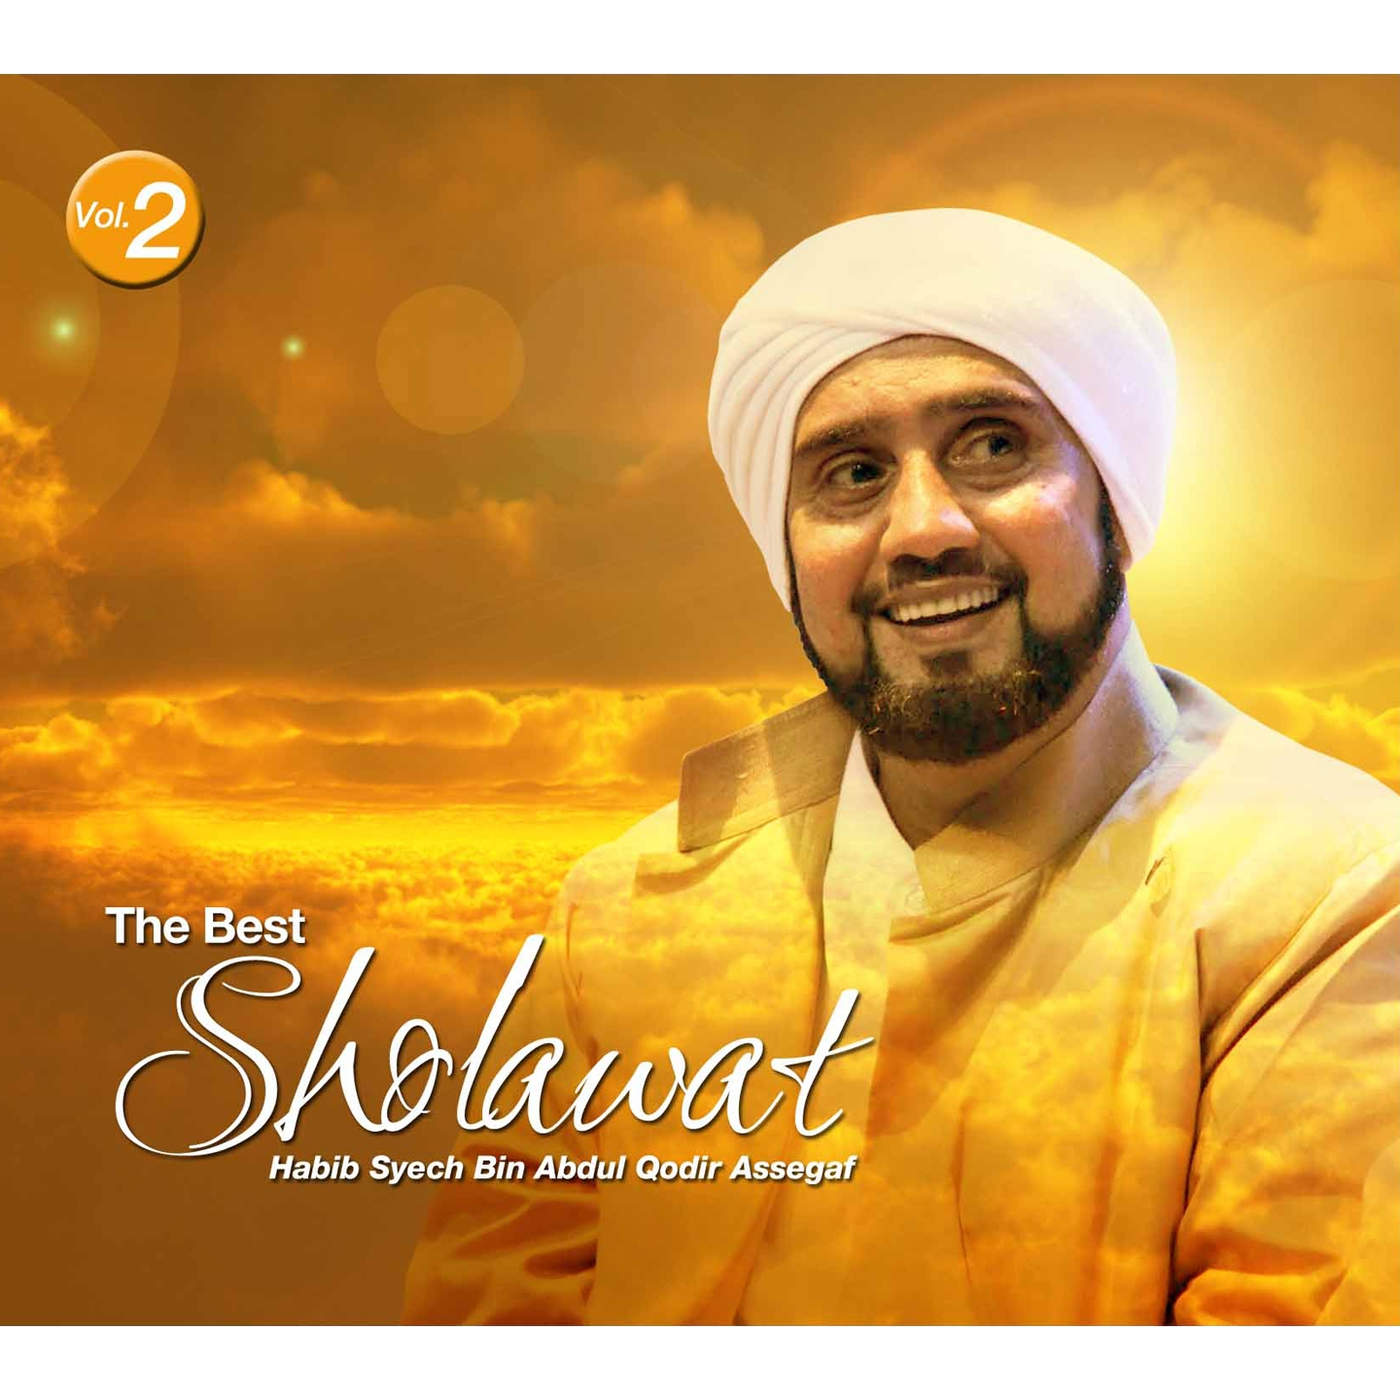 Habib Syech Bin Abdul Qodir Assegaf - The Best Sholawat, Vol. 2 - Album (2014) [iTunes Plus AAC M4A]